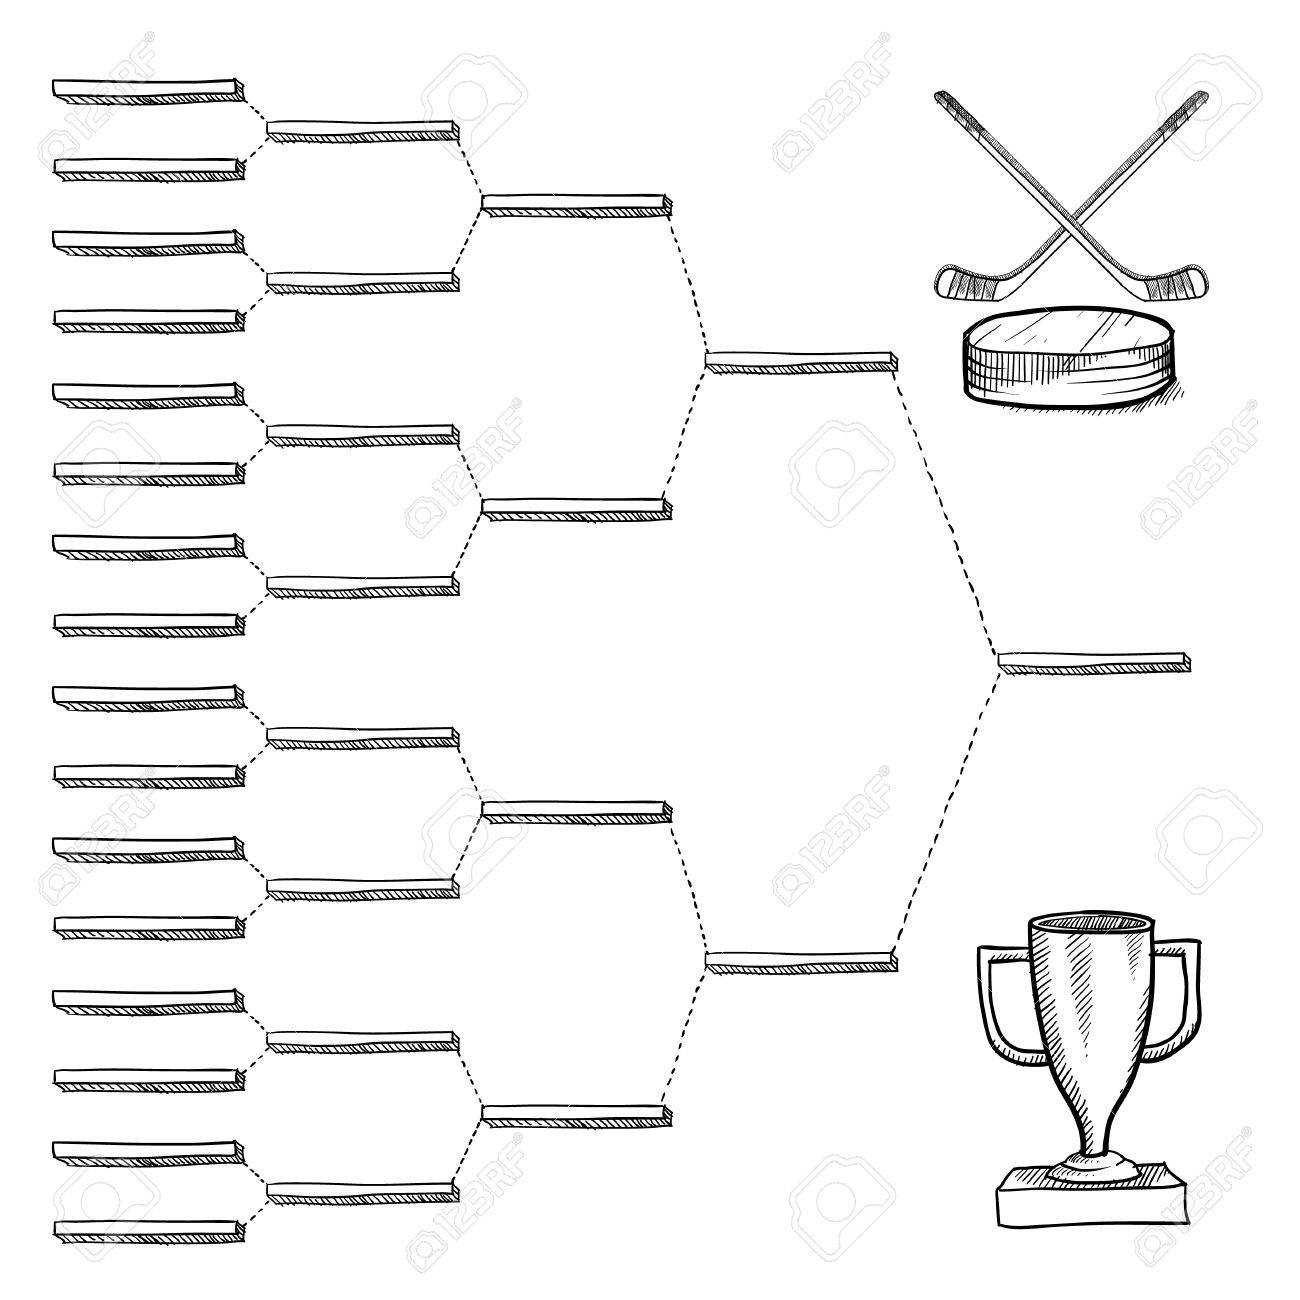 Blank Professional Hockey Playoff Bracket Vector File With